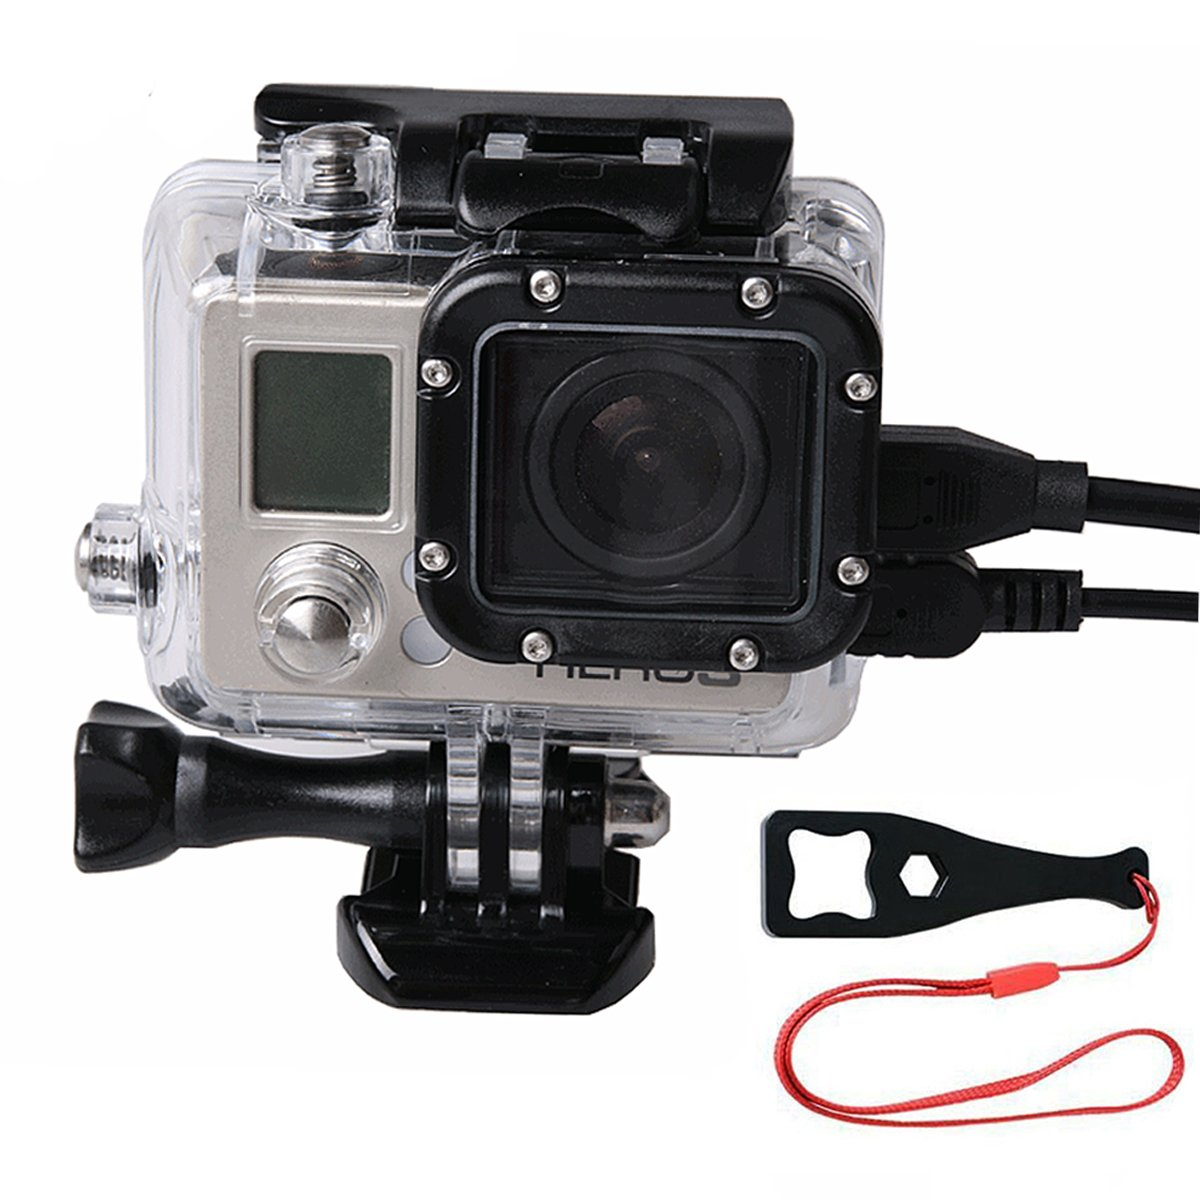 SmilePowo Side Openings Protective Shell Housing Case Camera Accessory ,Skeleton Housing For Gopro Hero4,HERO4 BLACK,HERO4 Silver,Hero3,Hero3+ Camera  Including Wrench